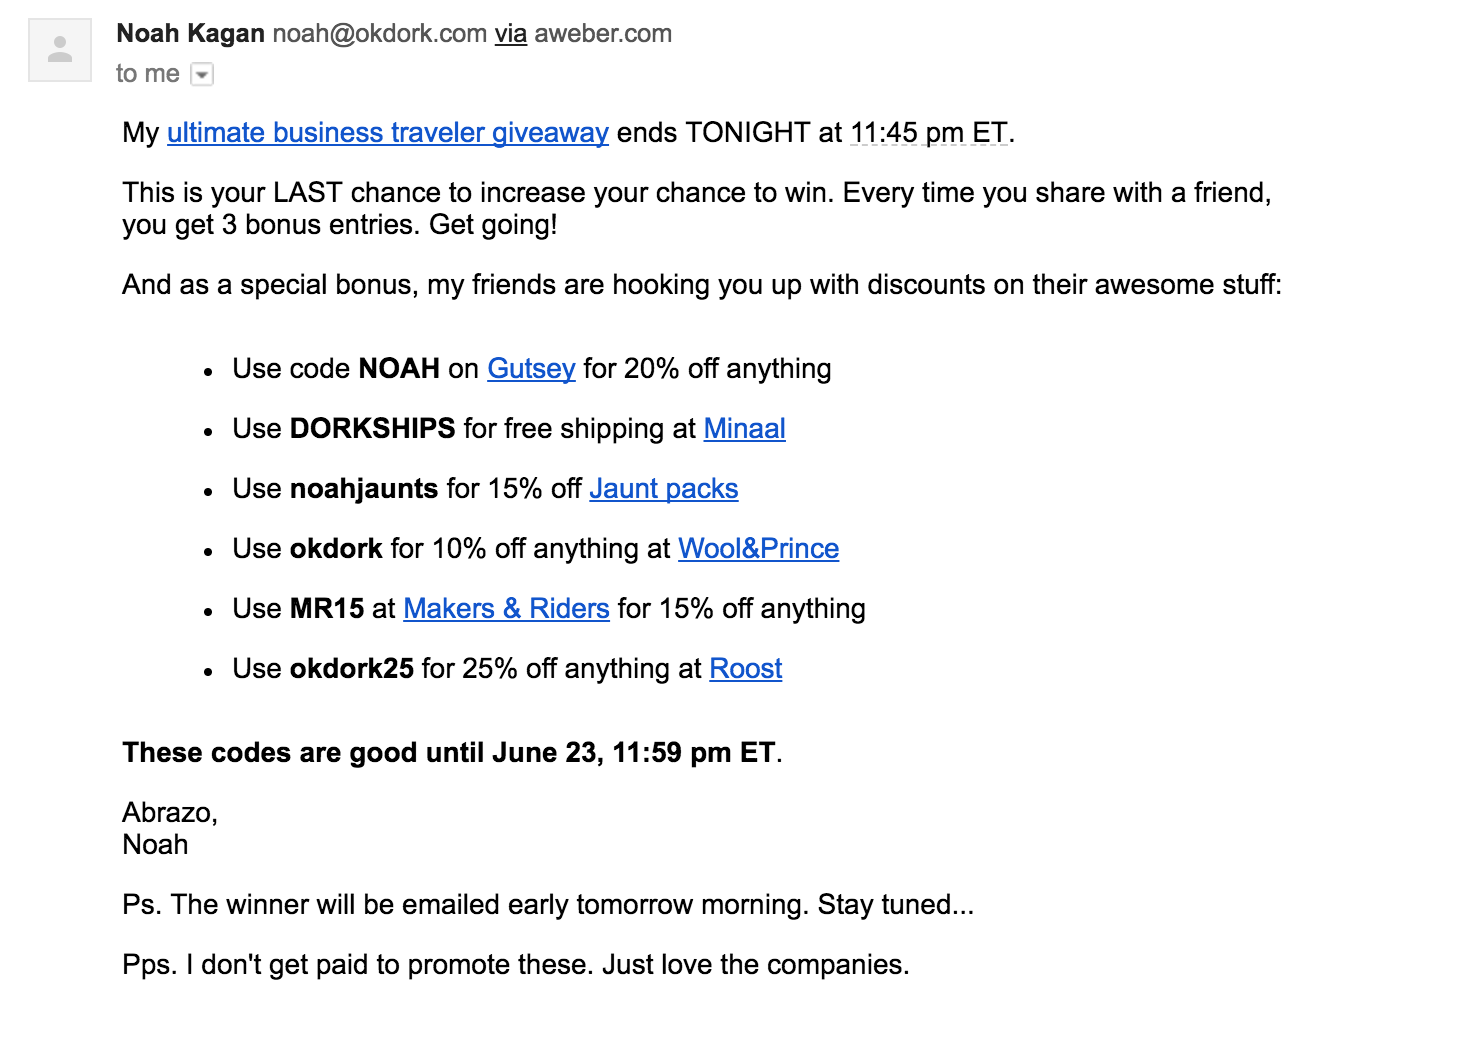 Screenshot of an email sent by Noah Kagan